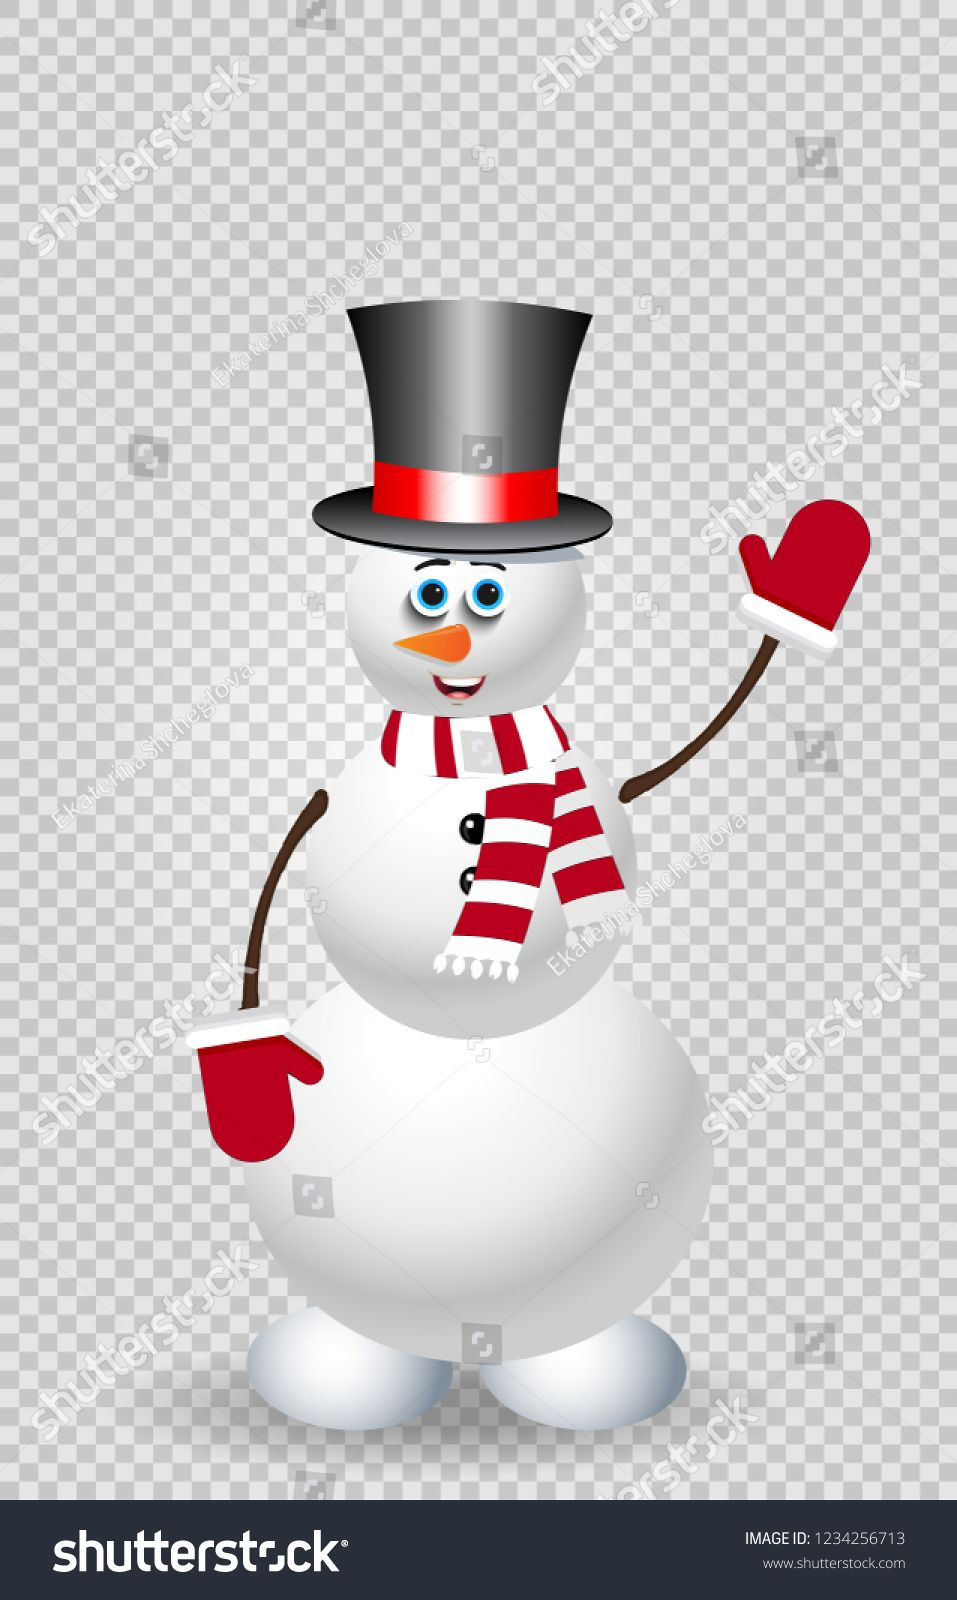 Cute cartoon snowman character in top hat, red striped